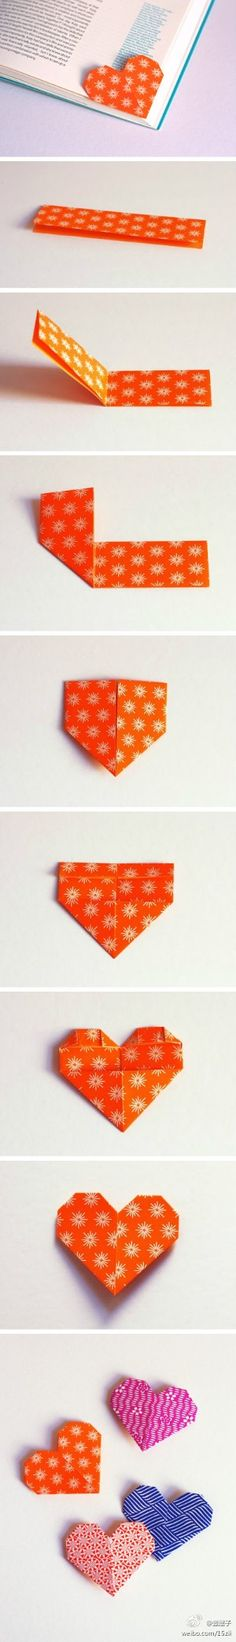 Heart-shaped page marker origami 하트 북마크